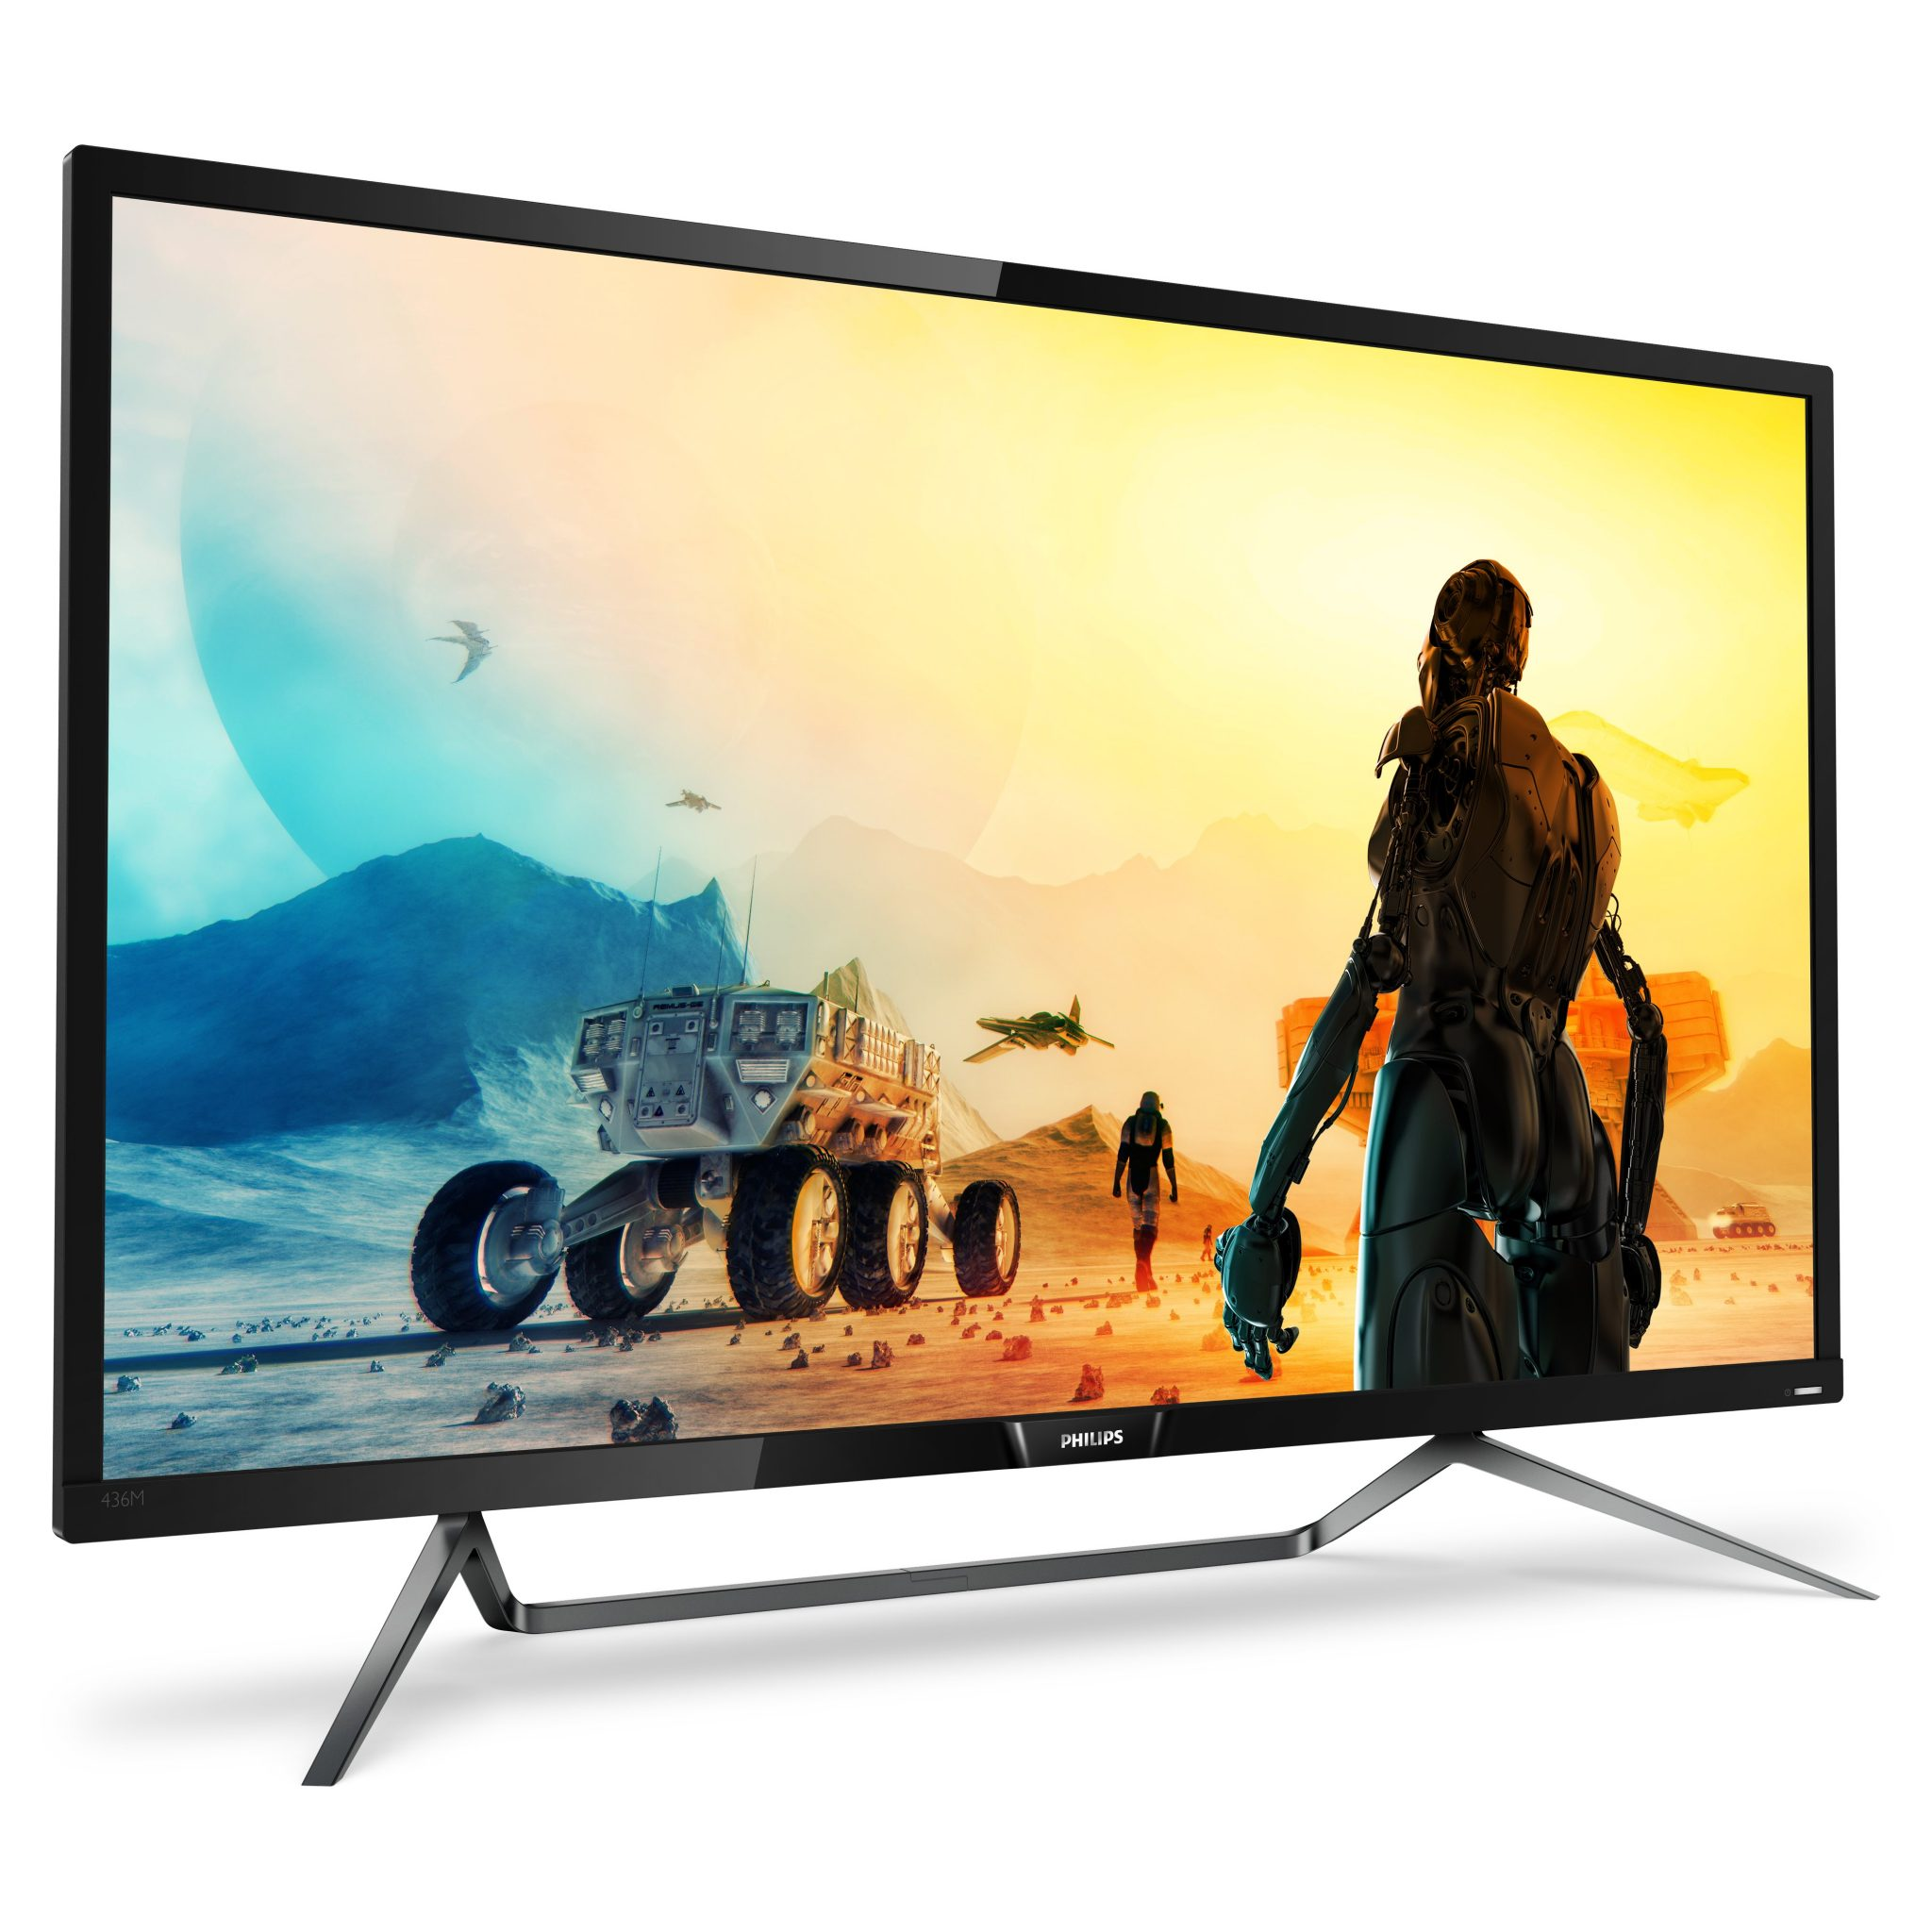 436M6VBP-Philips-Monitor-Gamescom-2018 Tagebuch Tag 3 Technik-AOC